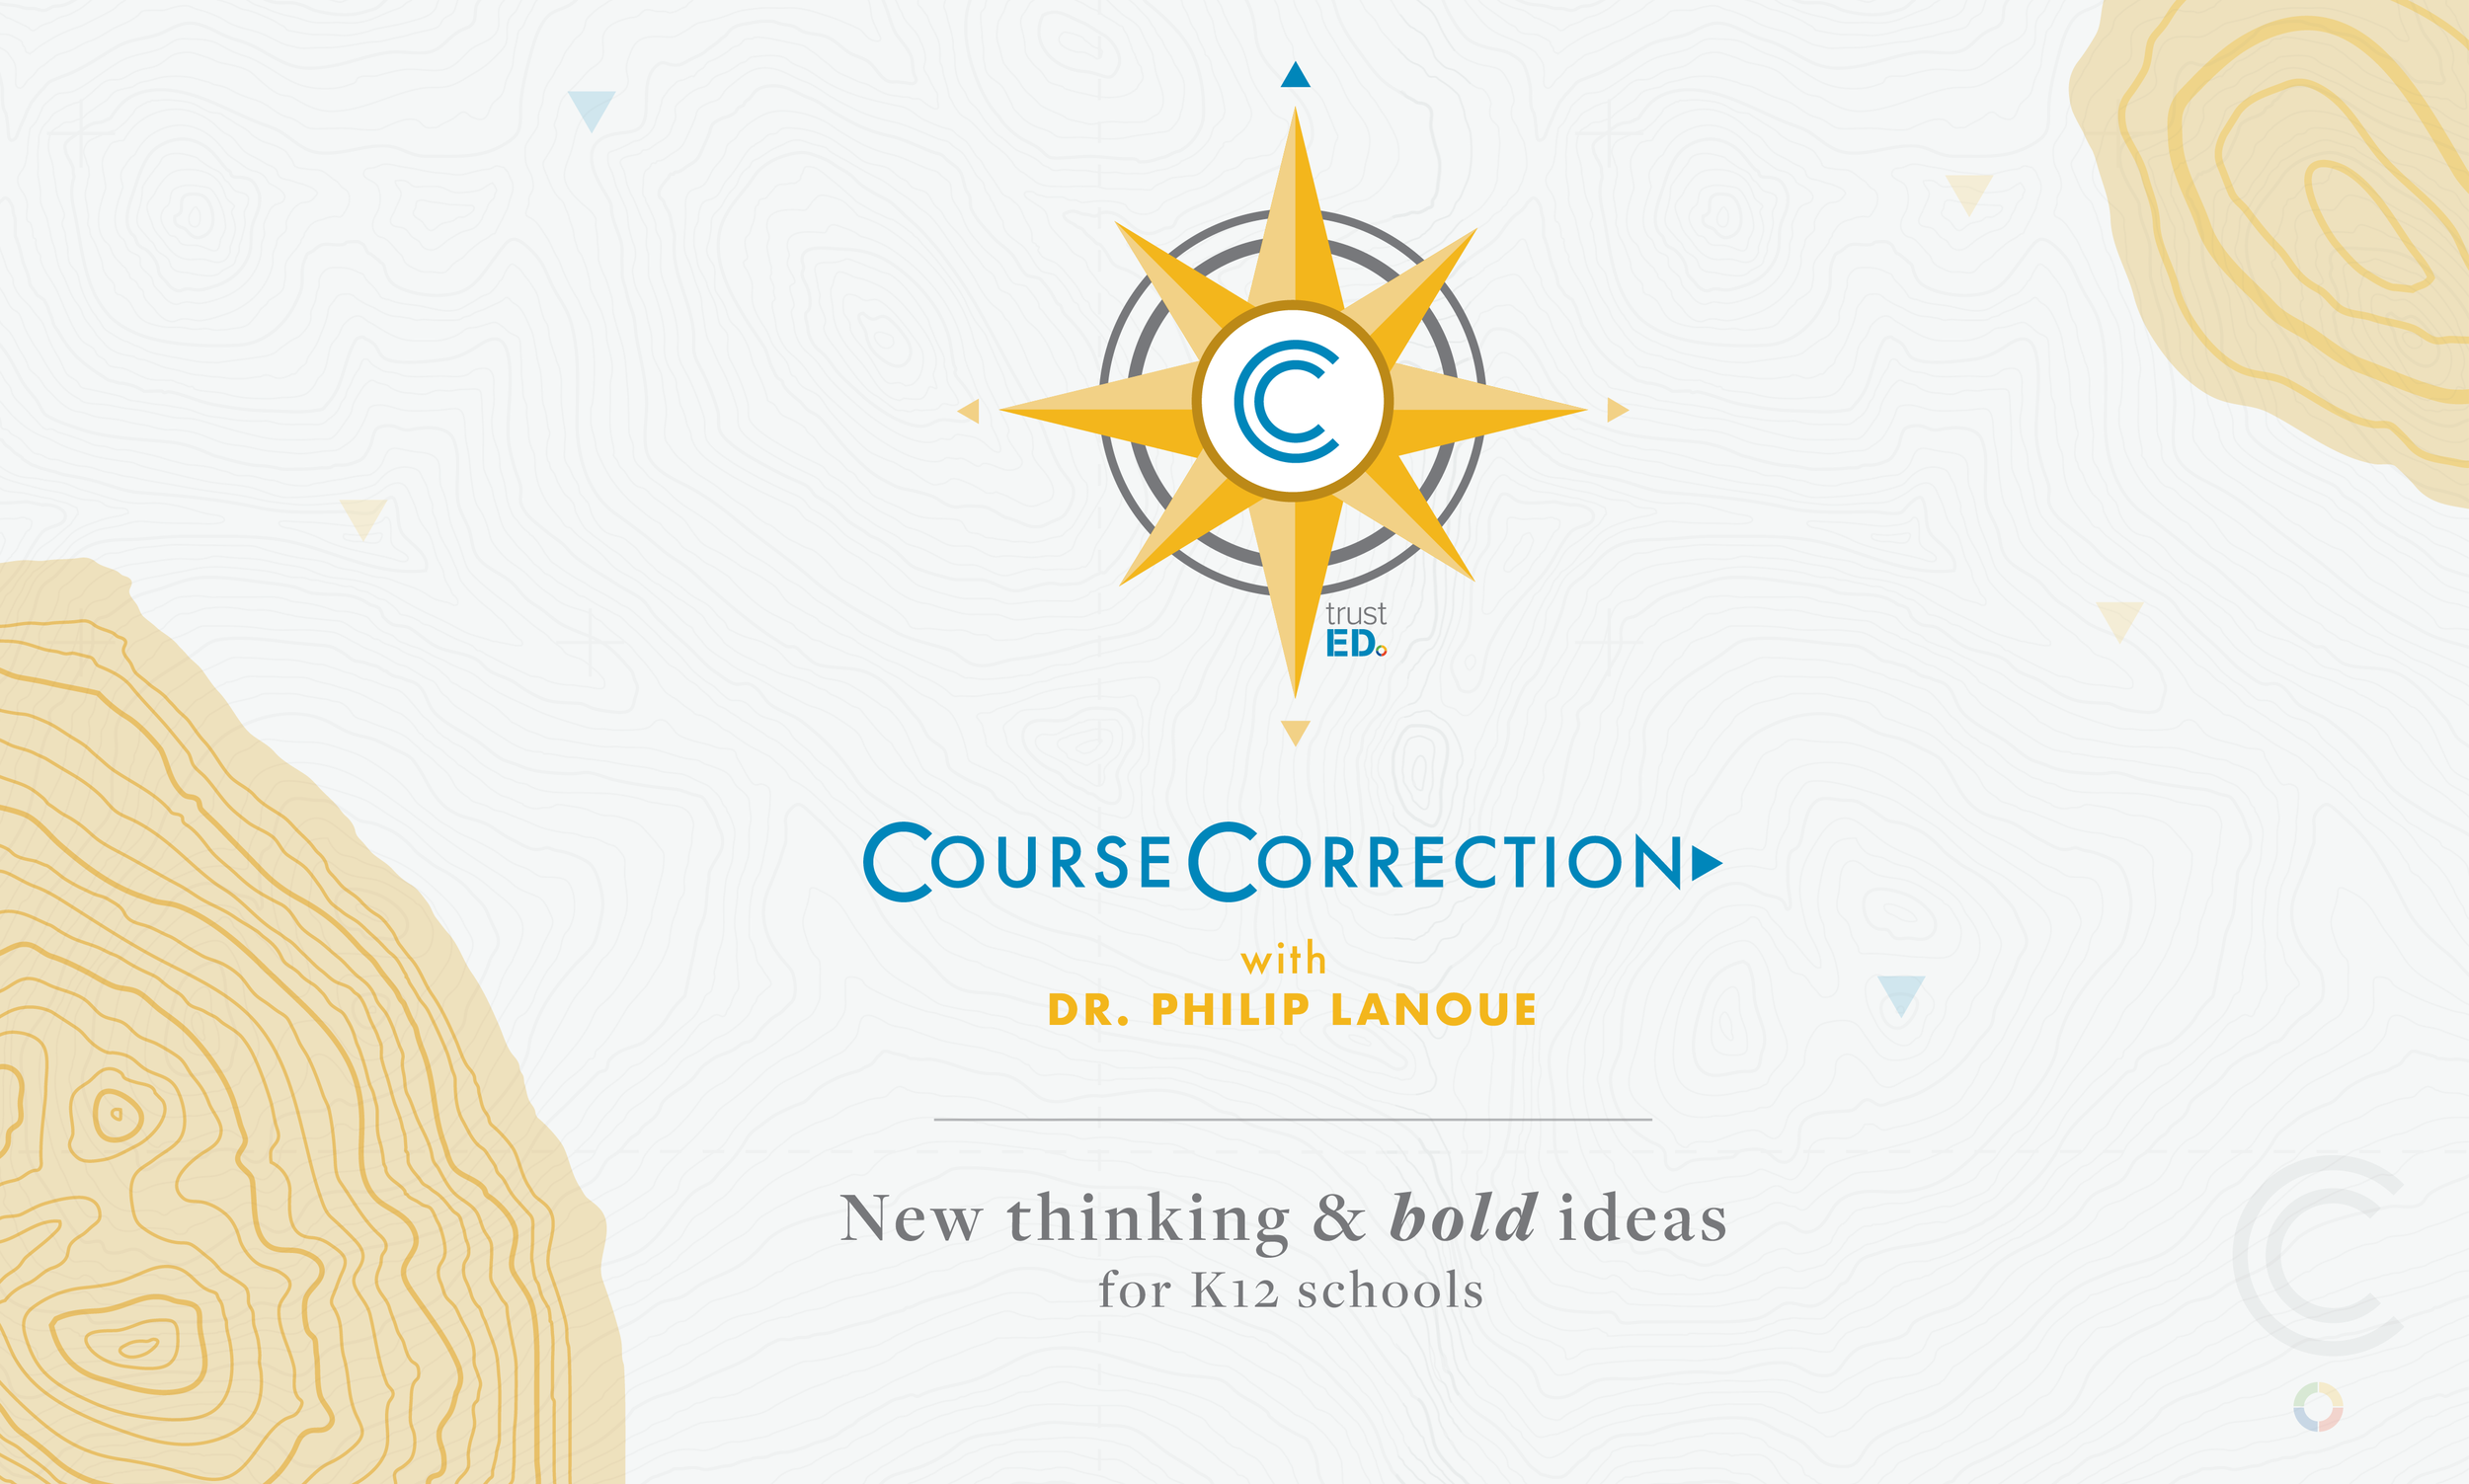 course-correction-cover-image-FINAL.png